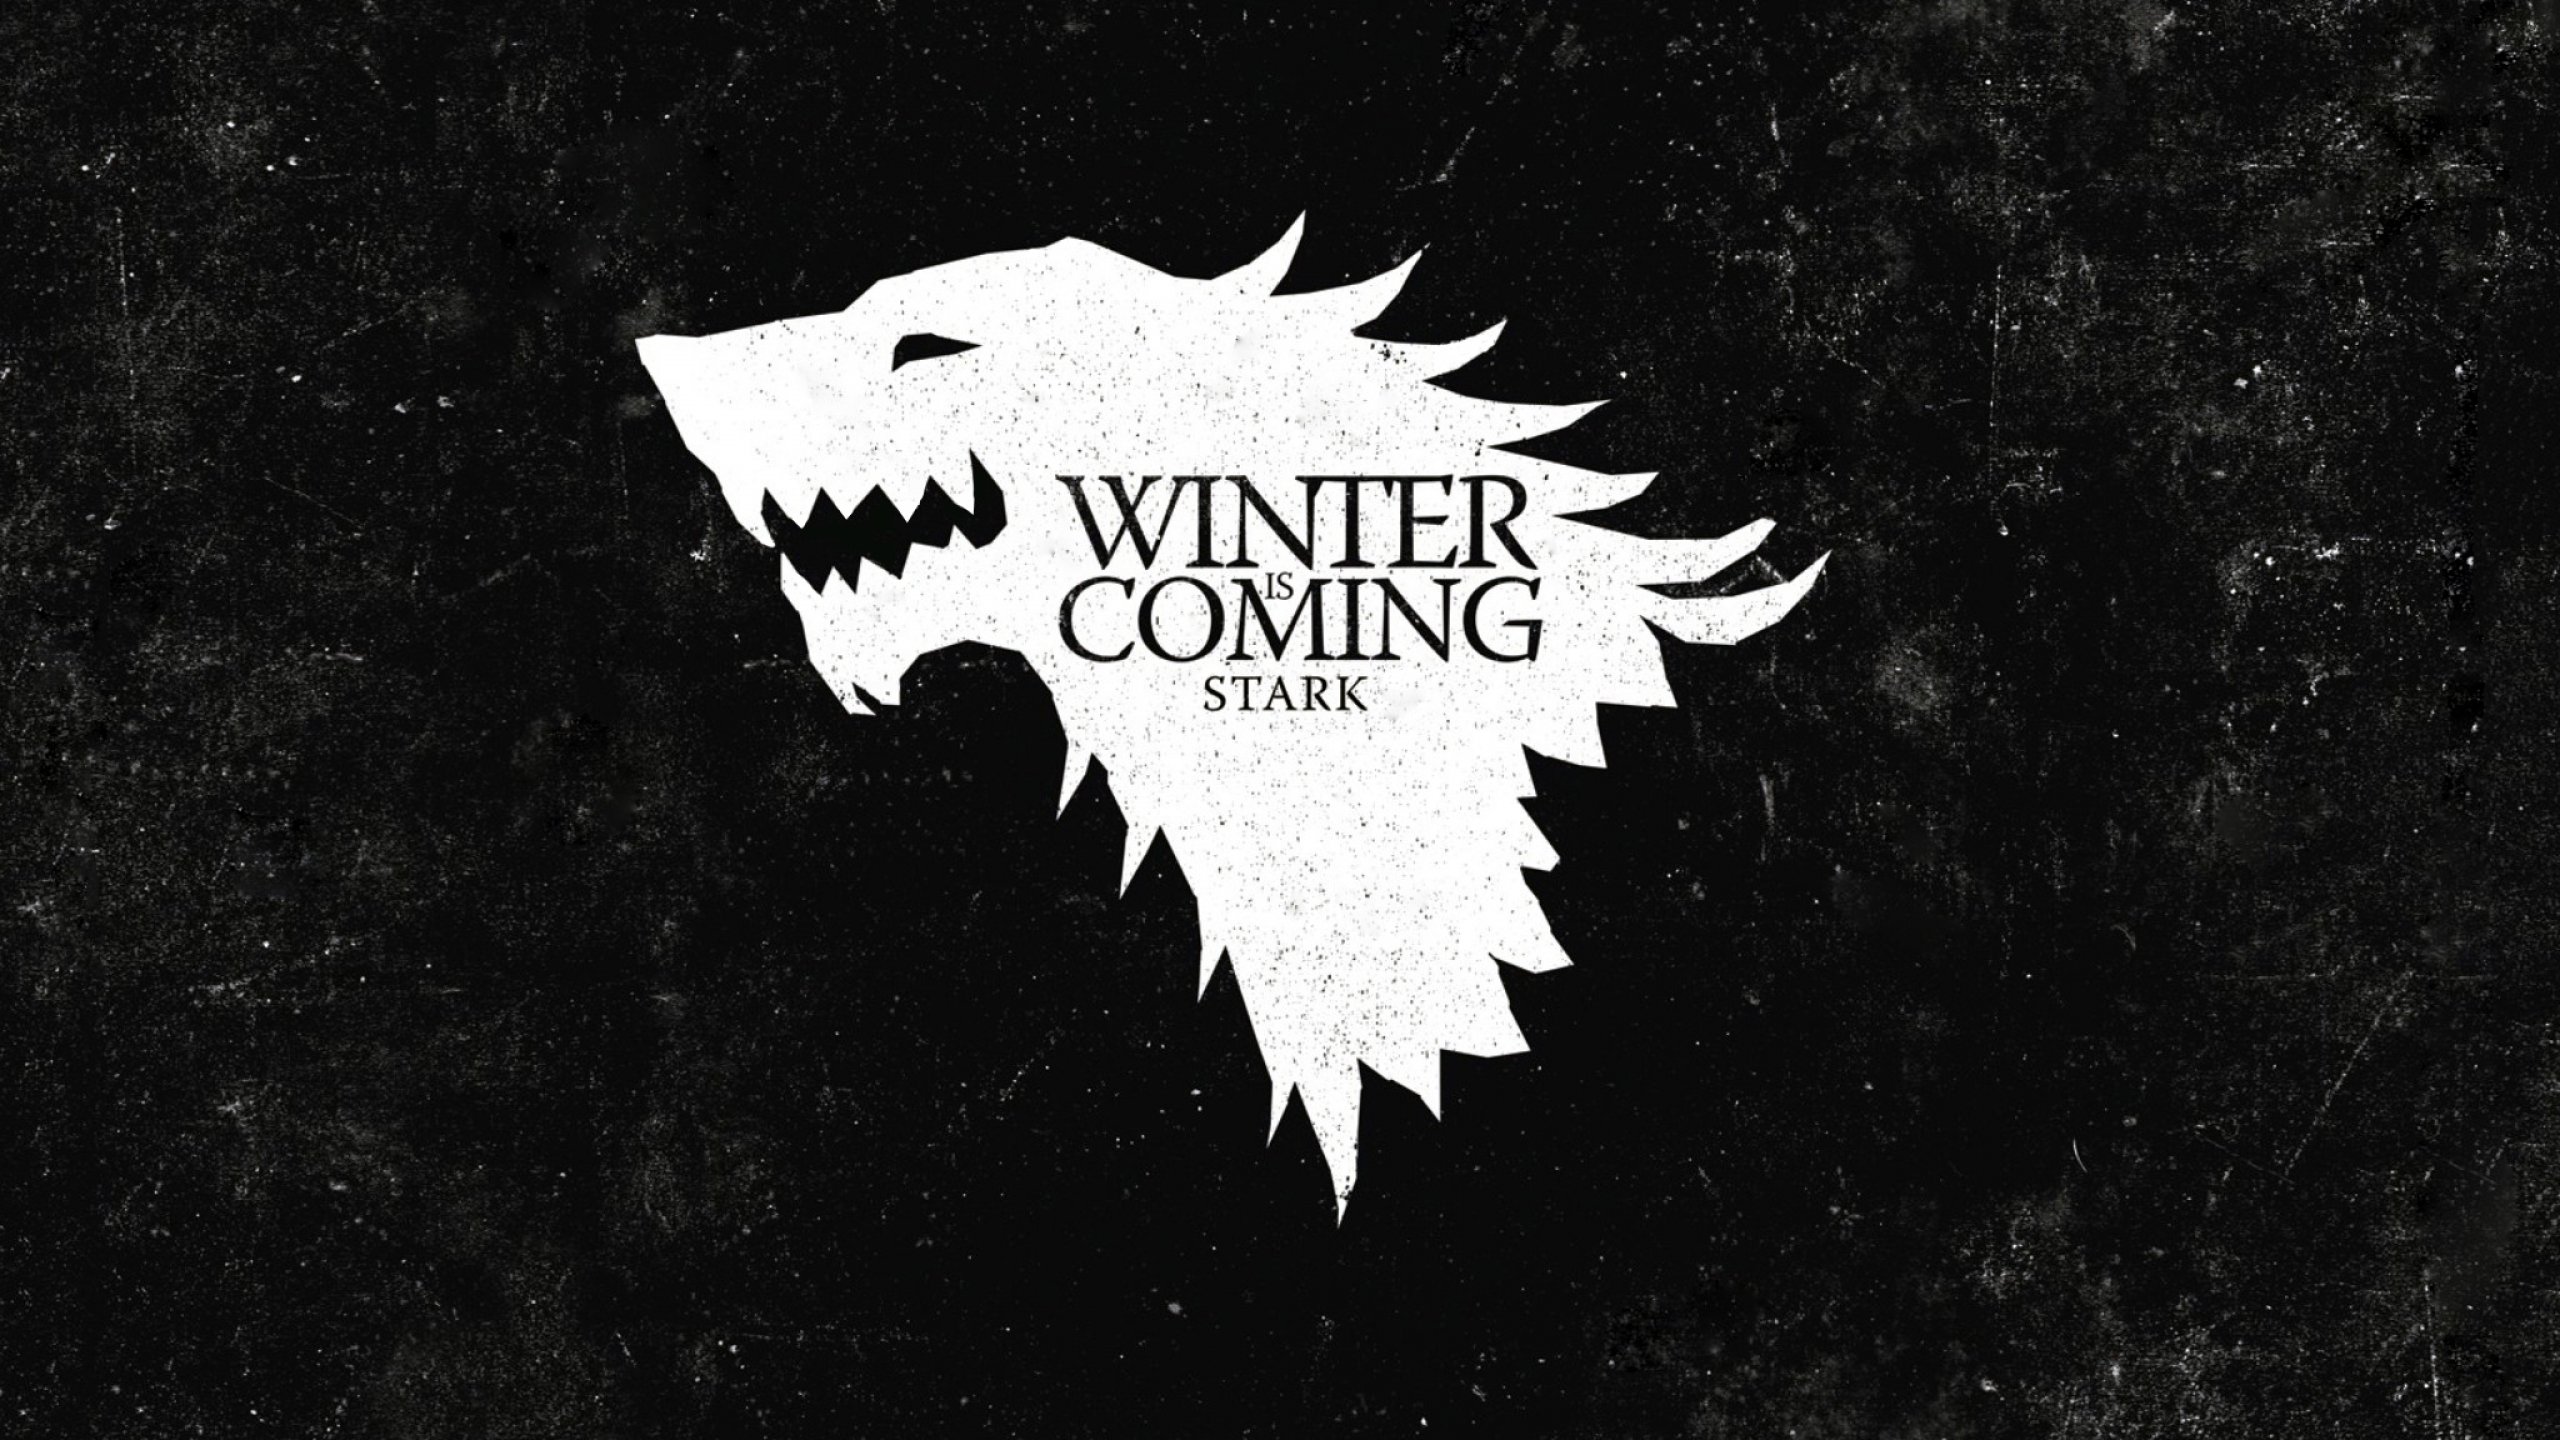 2560x1440 Winter Is Coming Wallpapers Gallery (64 Plus) Pic Wpw508648